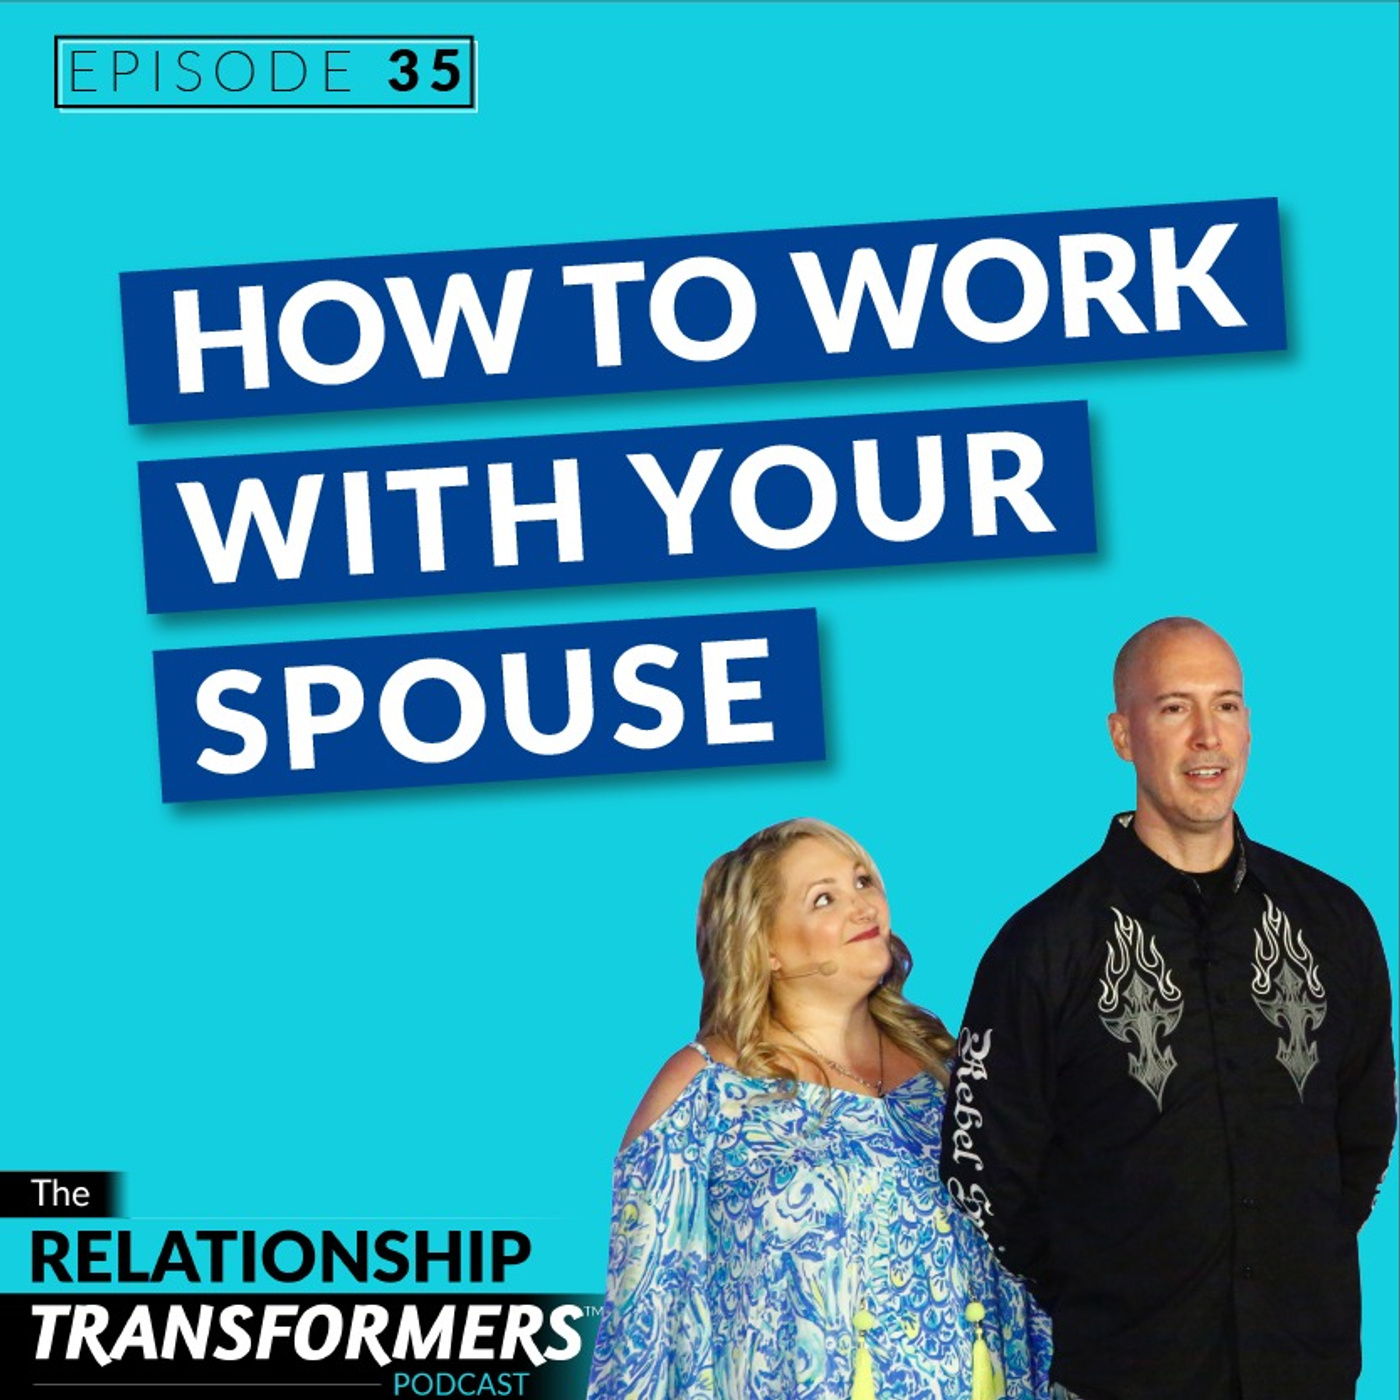 Relationship Transformers - 35: How To Work With Your Spouse